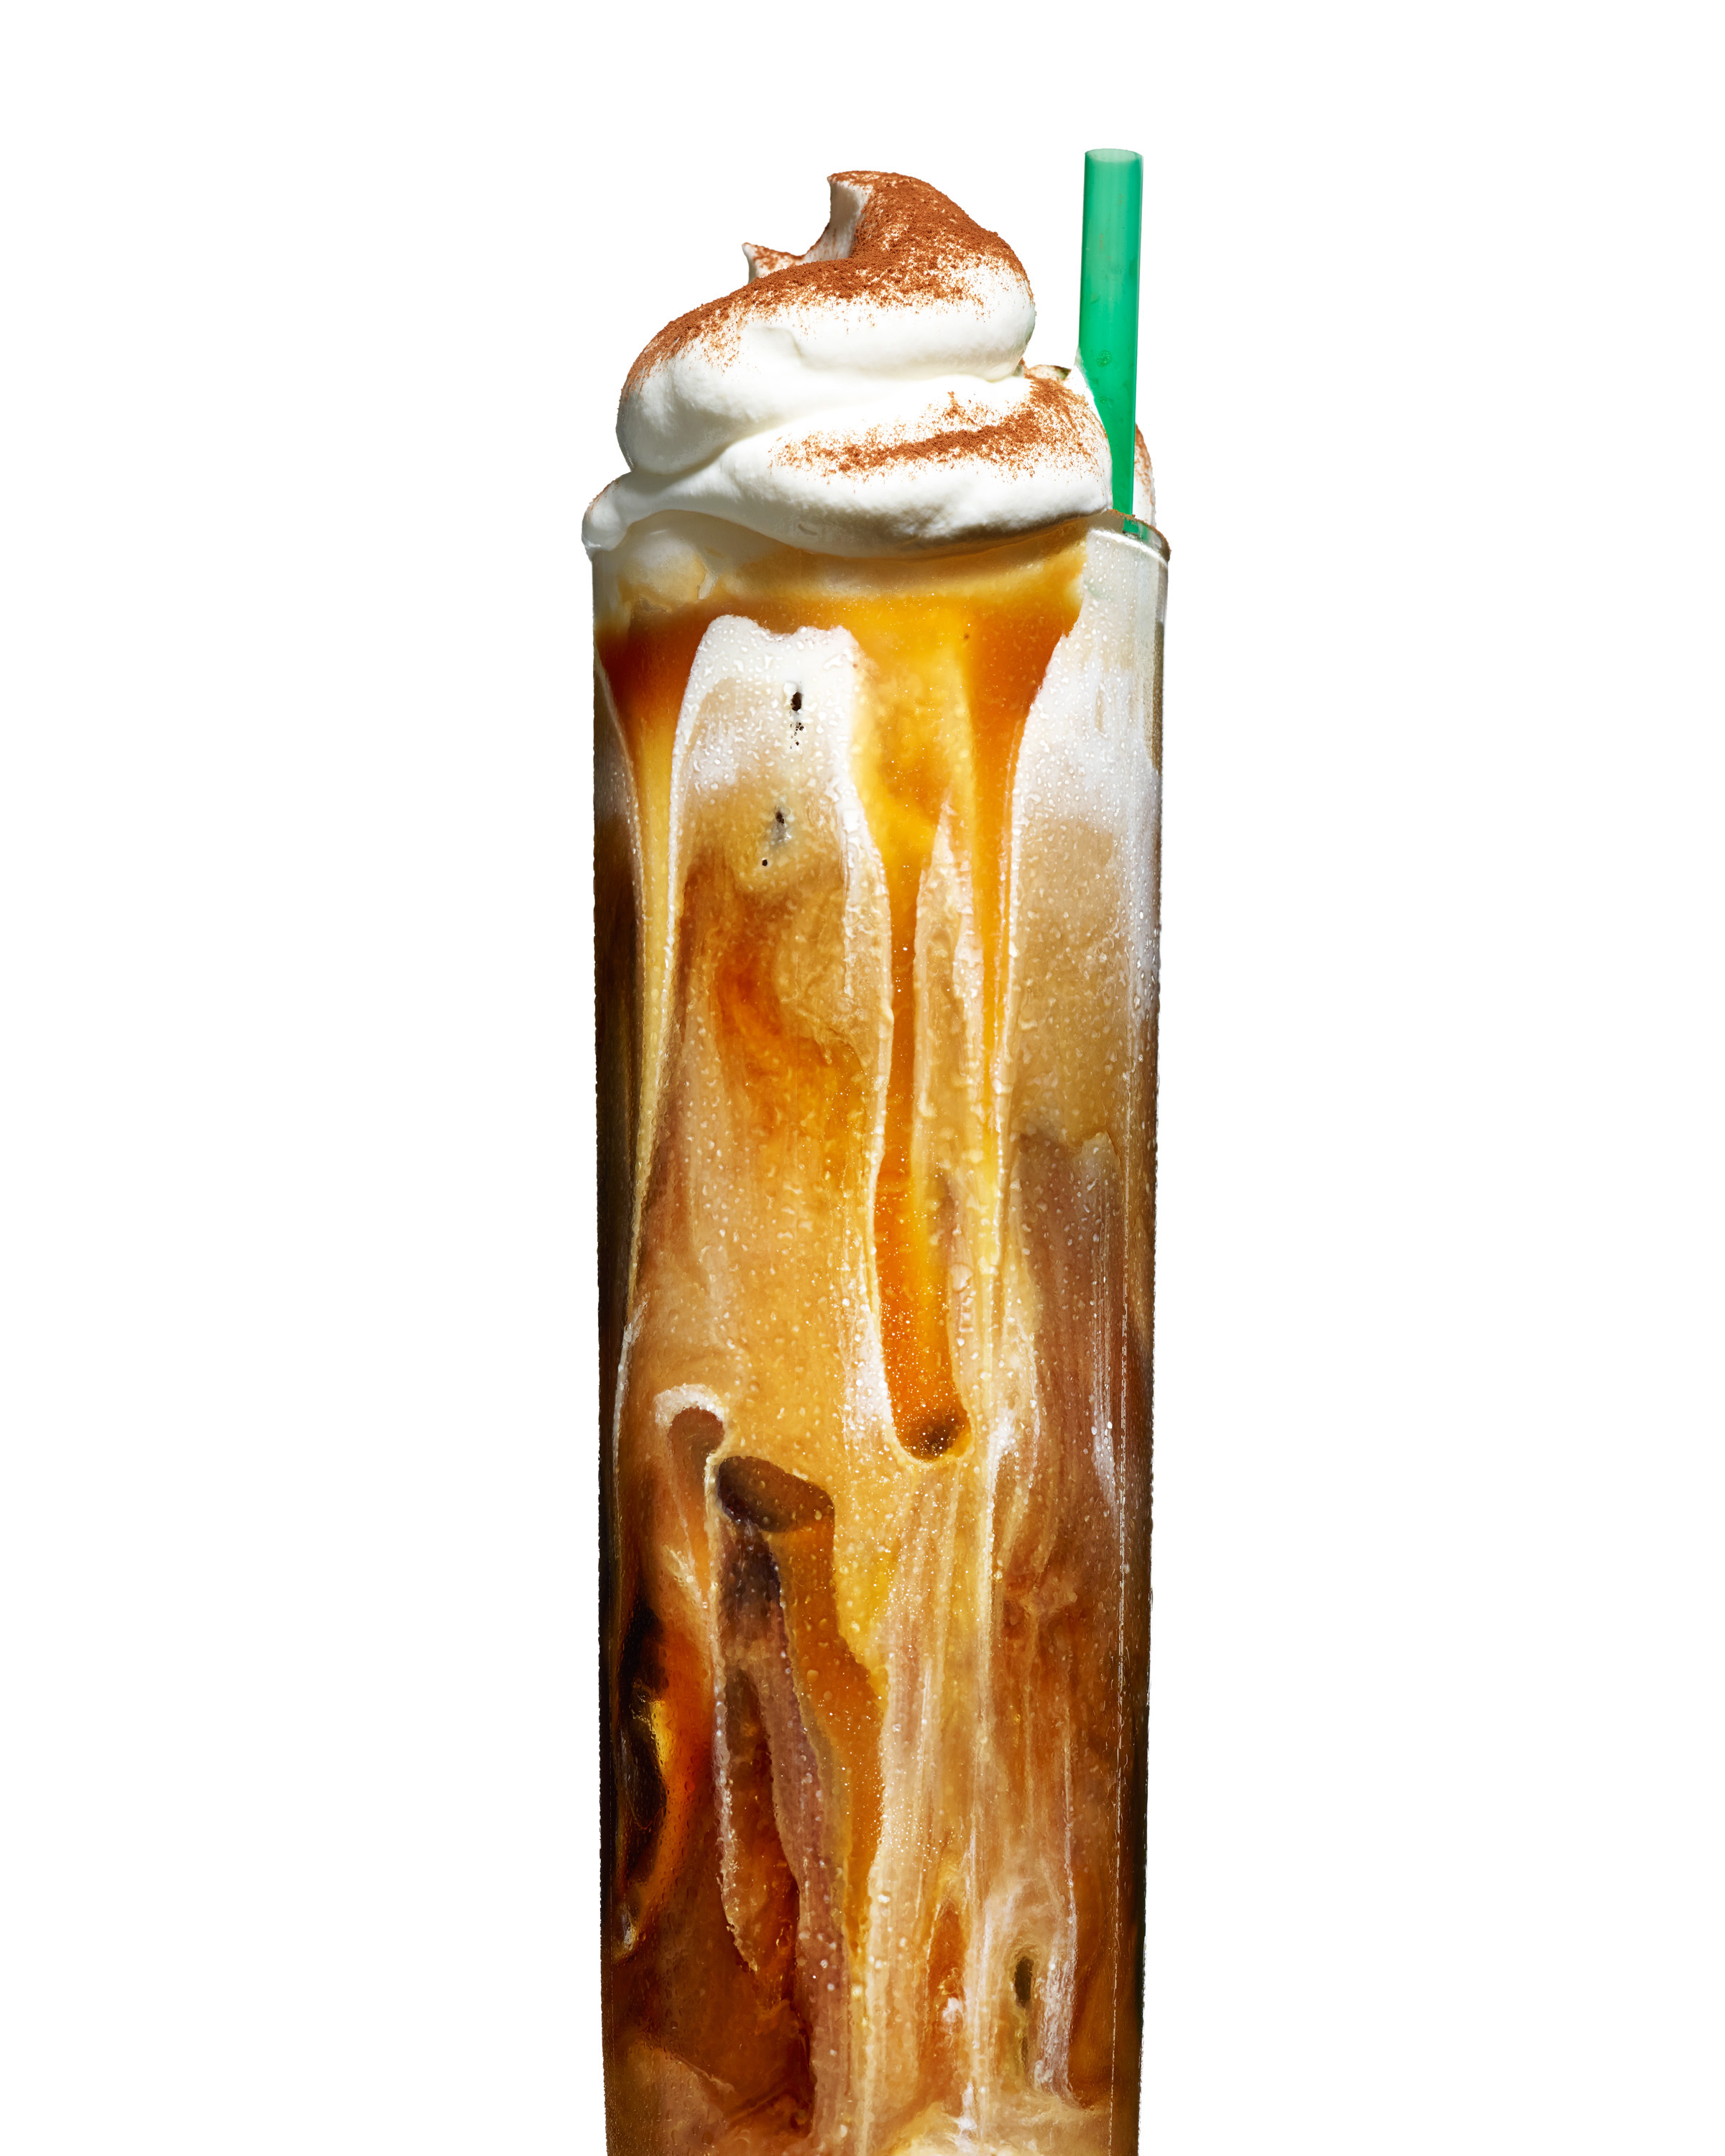 food stylist in San Francisco - Tall iced caramel latte for, photographed by Maren Caruso photographer